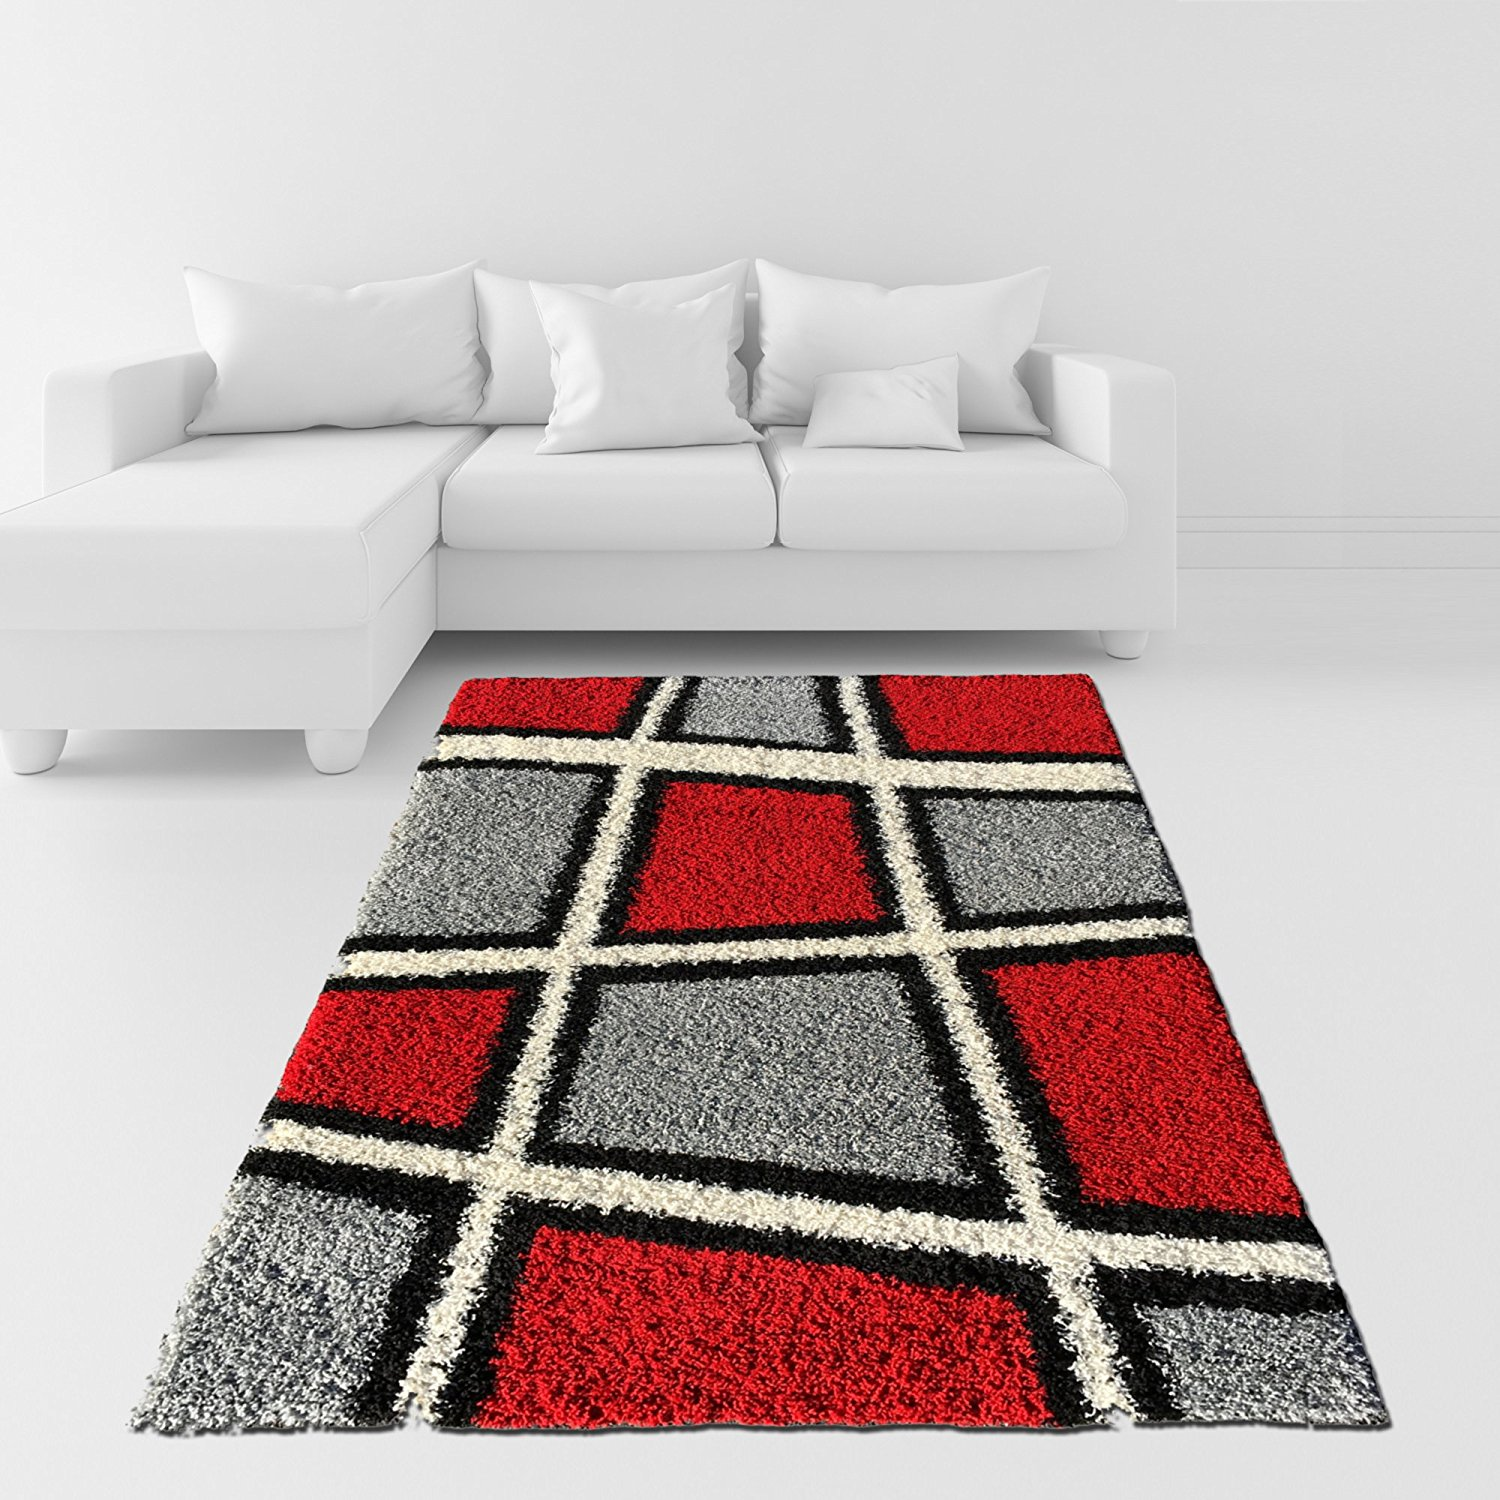 Soft Area Rug 3x5 Geometric Tile Design Red Ivory Black Grey Gy Contemporary